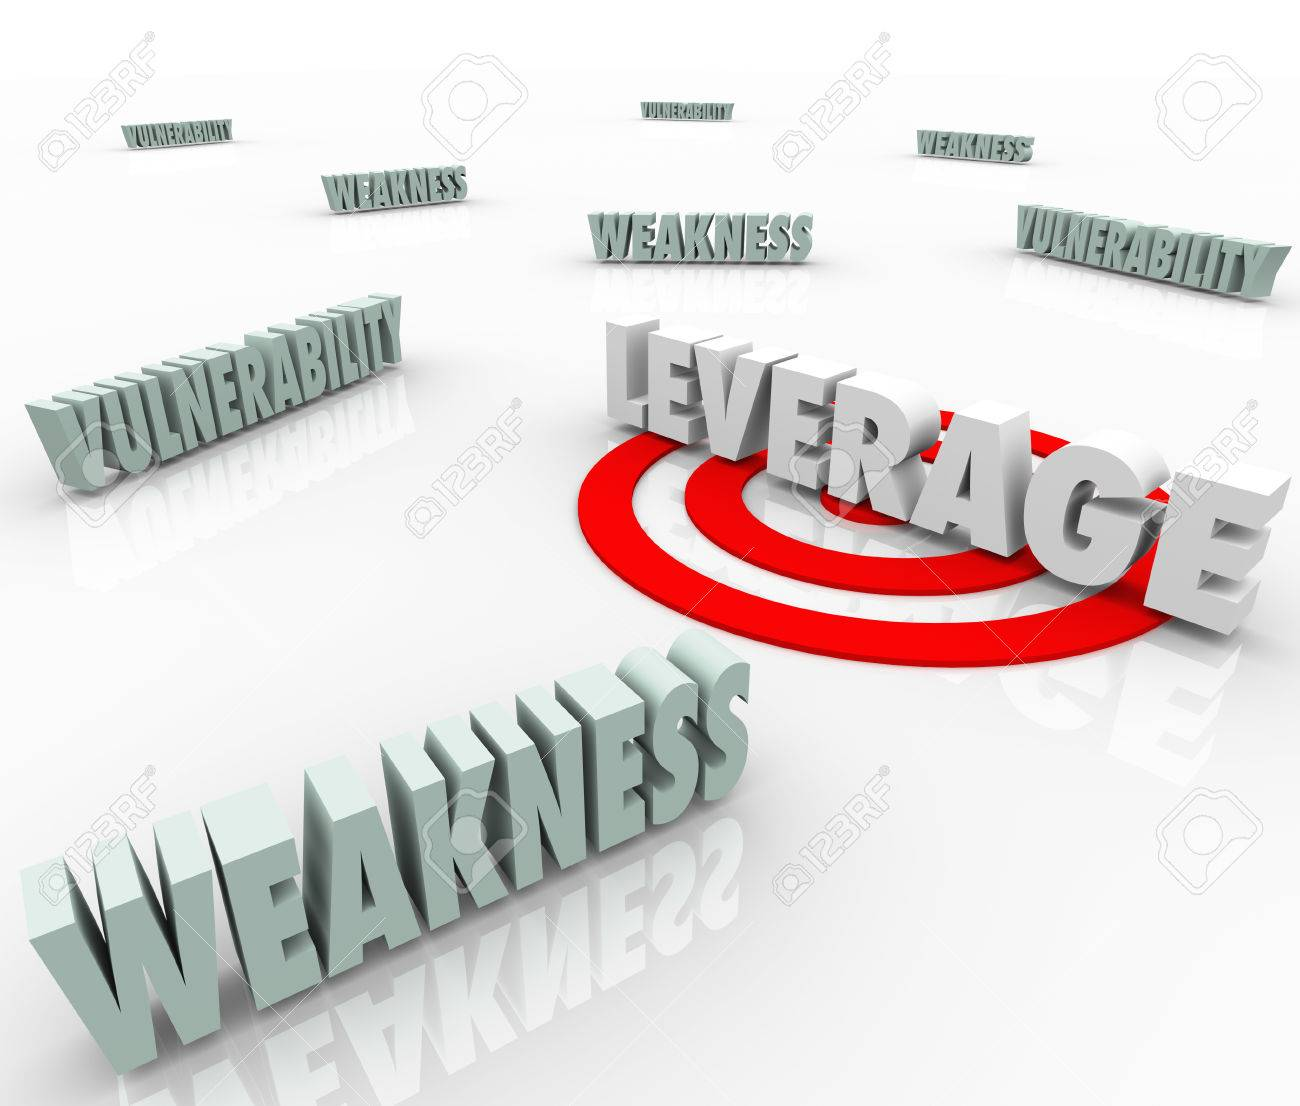 The word Leverage targeted with a bull's eye amid vulnerability and weakness to illustrate a competitive advantage or edge in negotiation and bargaining Stock Photo - 22869488